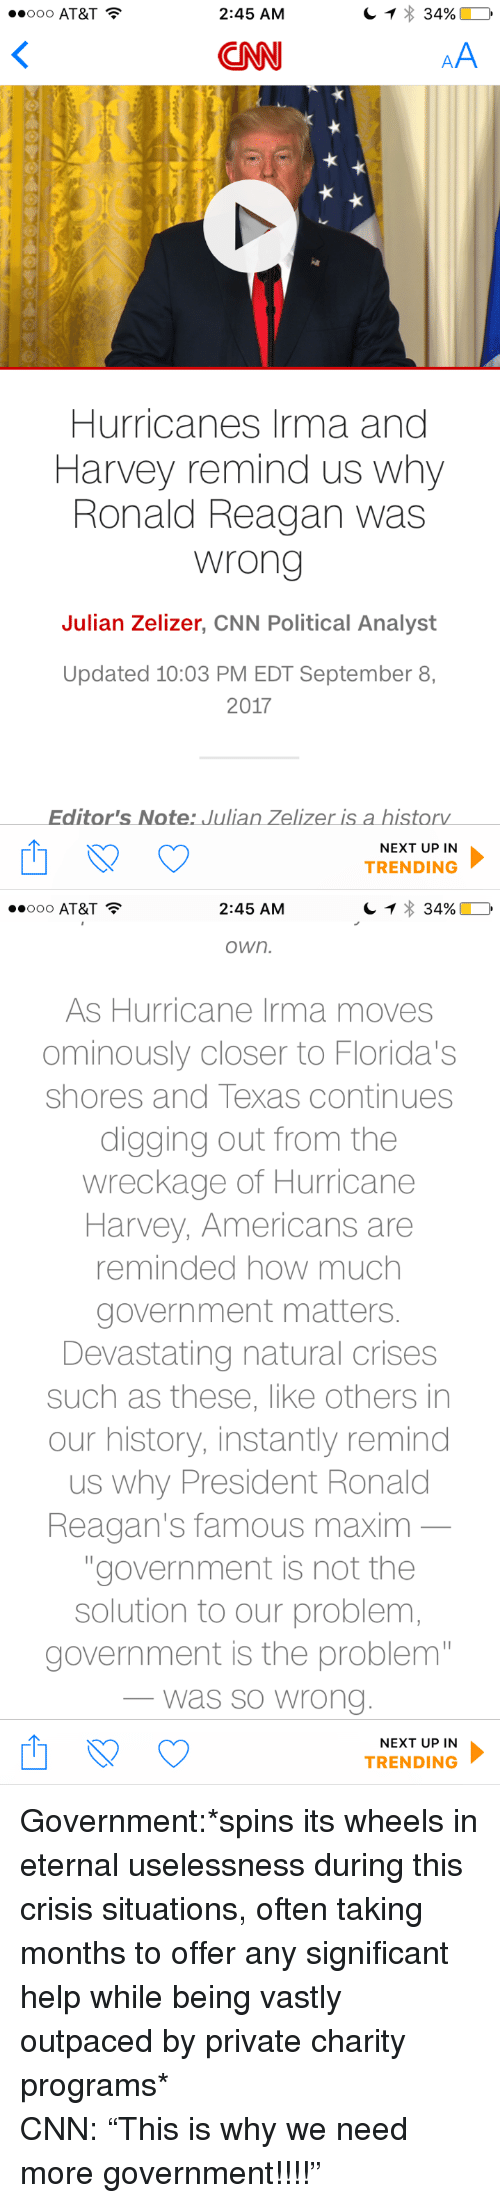 """wreckage: OOO AT&T  2:45 AM  CNN  Hurricanes Irma and  Harvey remind us why  Ronald Reagan was  wrong  Julian Zelizer, CNN Political Analyst  Updated 10:03 PM EDT September 8,  2017  Editor's Note: Julian Zelizer is a historv  NEXT UP IN  TRENDING   2:45 AM  own.  As Hurricane Irma moves  ominously closer to Florida's  shores and Texas continues  digging out from the  wreckage of Hurricane  Harvey, Americans are  reminded how much  government matters  Devastating natural crises  such as these, like others in  our history, instantly remind  us why President Ronald  Reagan's famous maxim  """"government is not the  solution to our problem  government is the problem  was so Wrono  NEXT UP IN  TRENDING <p>Government:*spins its wheels in eternal uselessness during this crisis situations, often taking months to offer any significant help while being vastly outpaced by private charity programs*<br/> CNN: &ldquo;This is why we need more government!!!!&rdquo;</p>"""